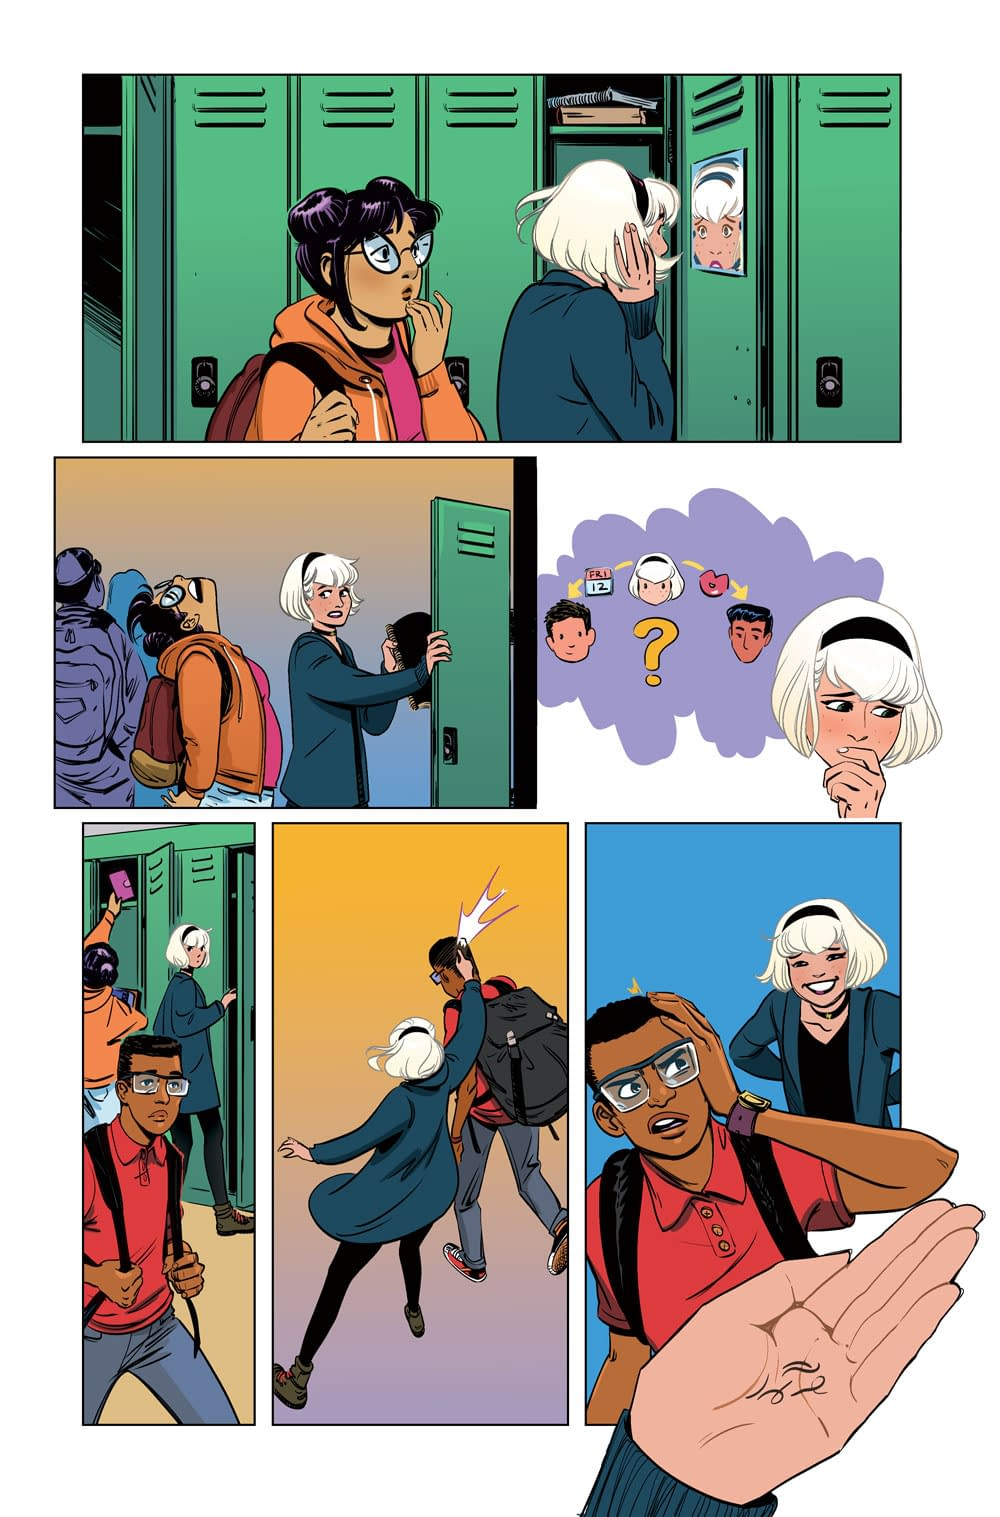 A Witch Hunt Comes to Greendale in Sabrina the Teenage Witch #4 FOC Preview